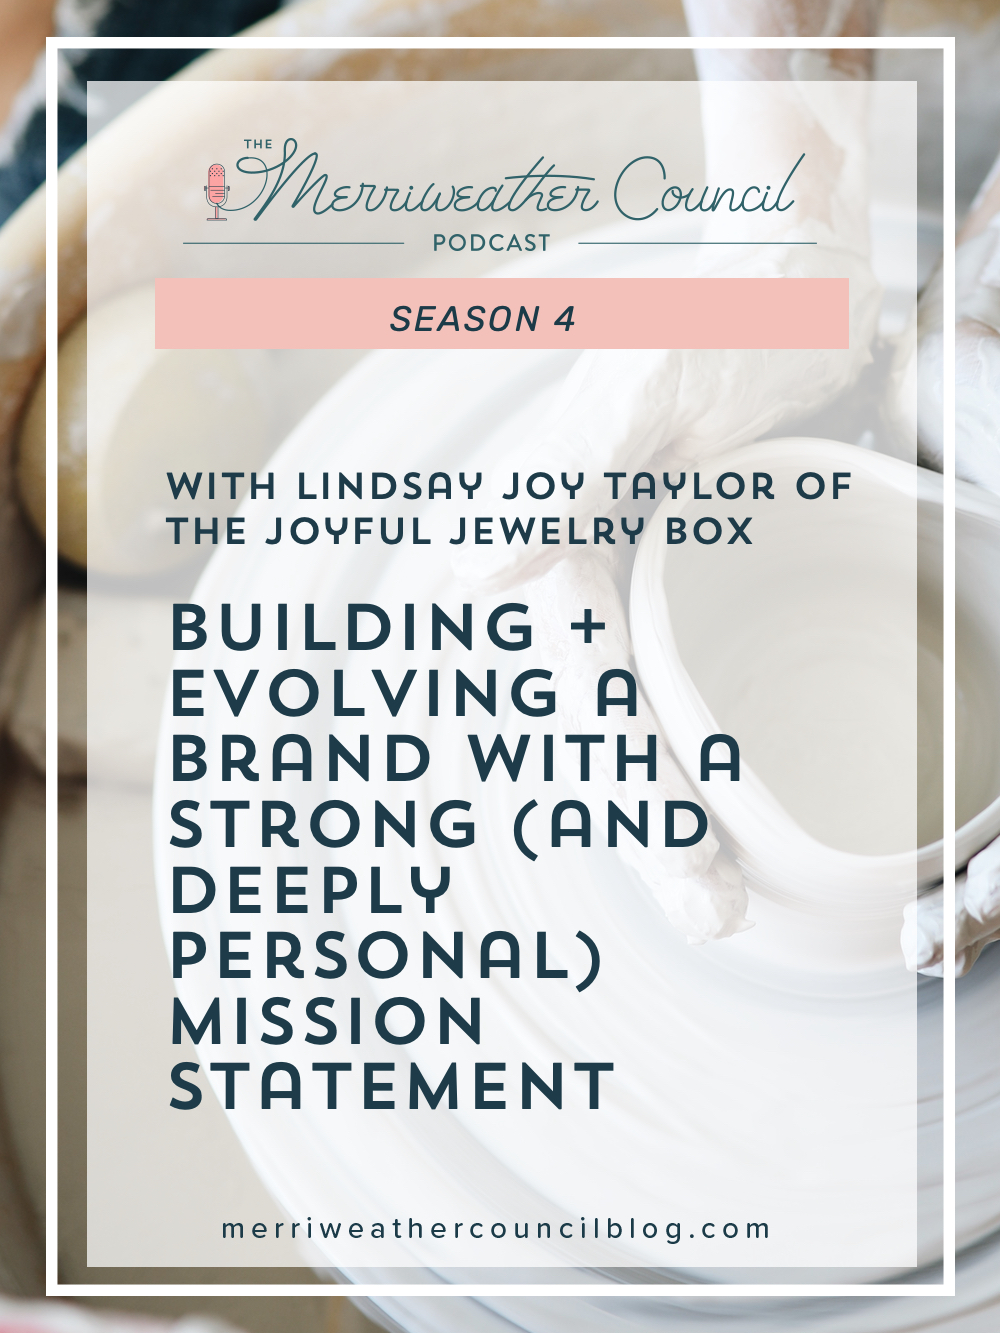 Building + Evolving a Brand with a Strong (and Deeply Personal) Mission Statement | Merriweather Council Podcast